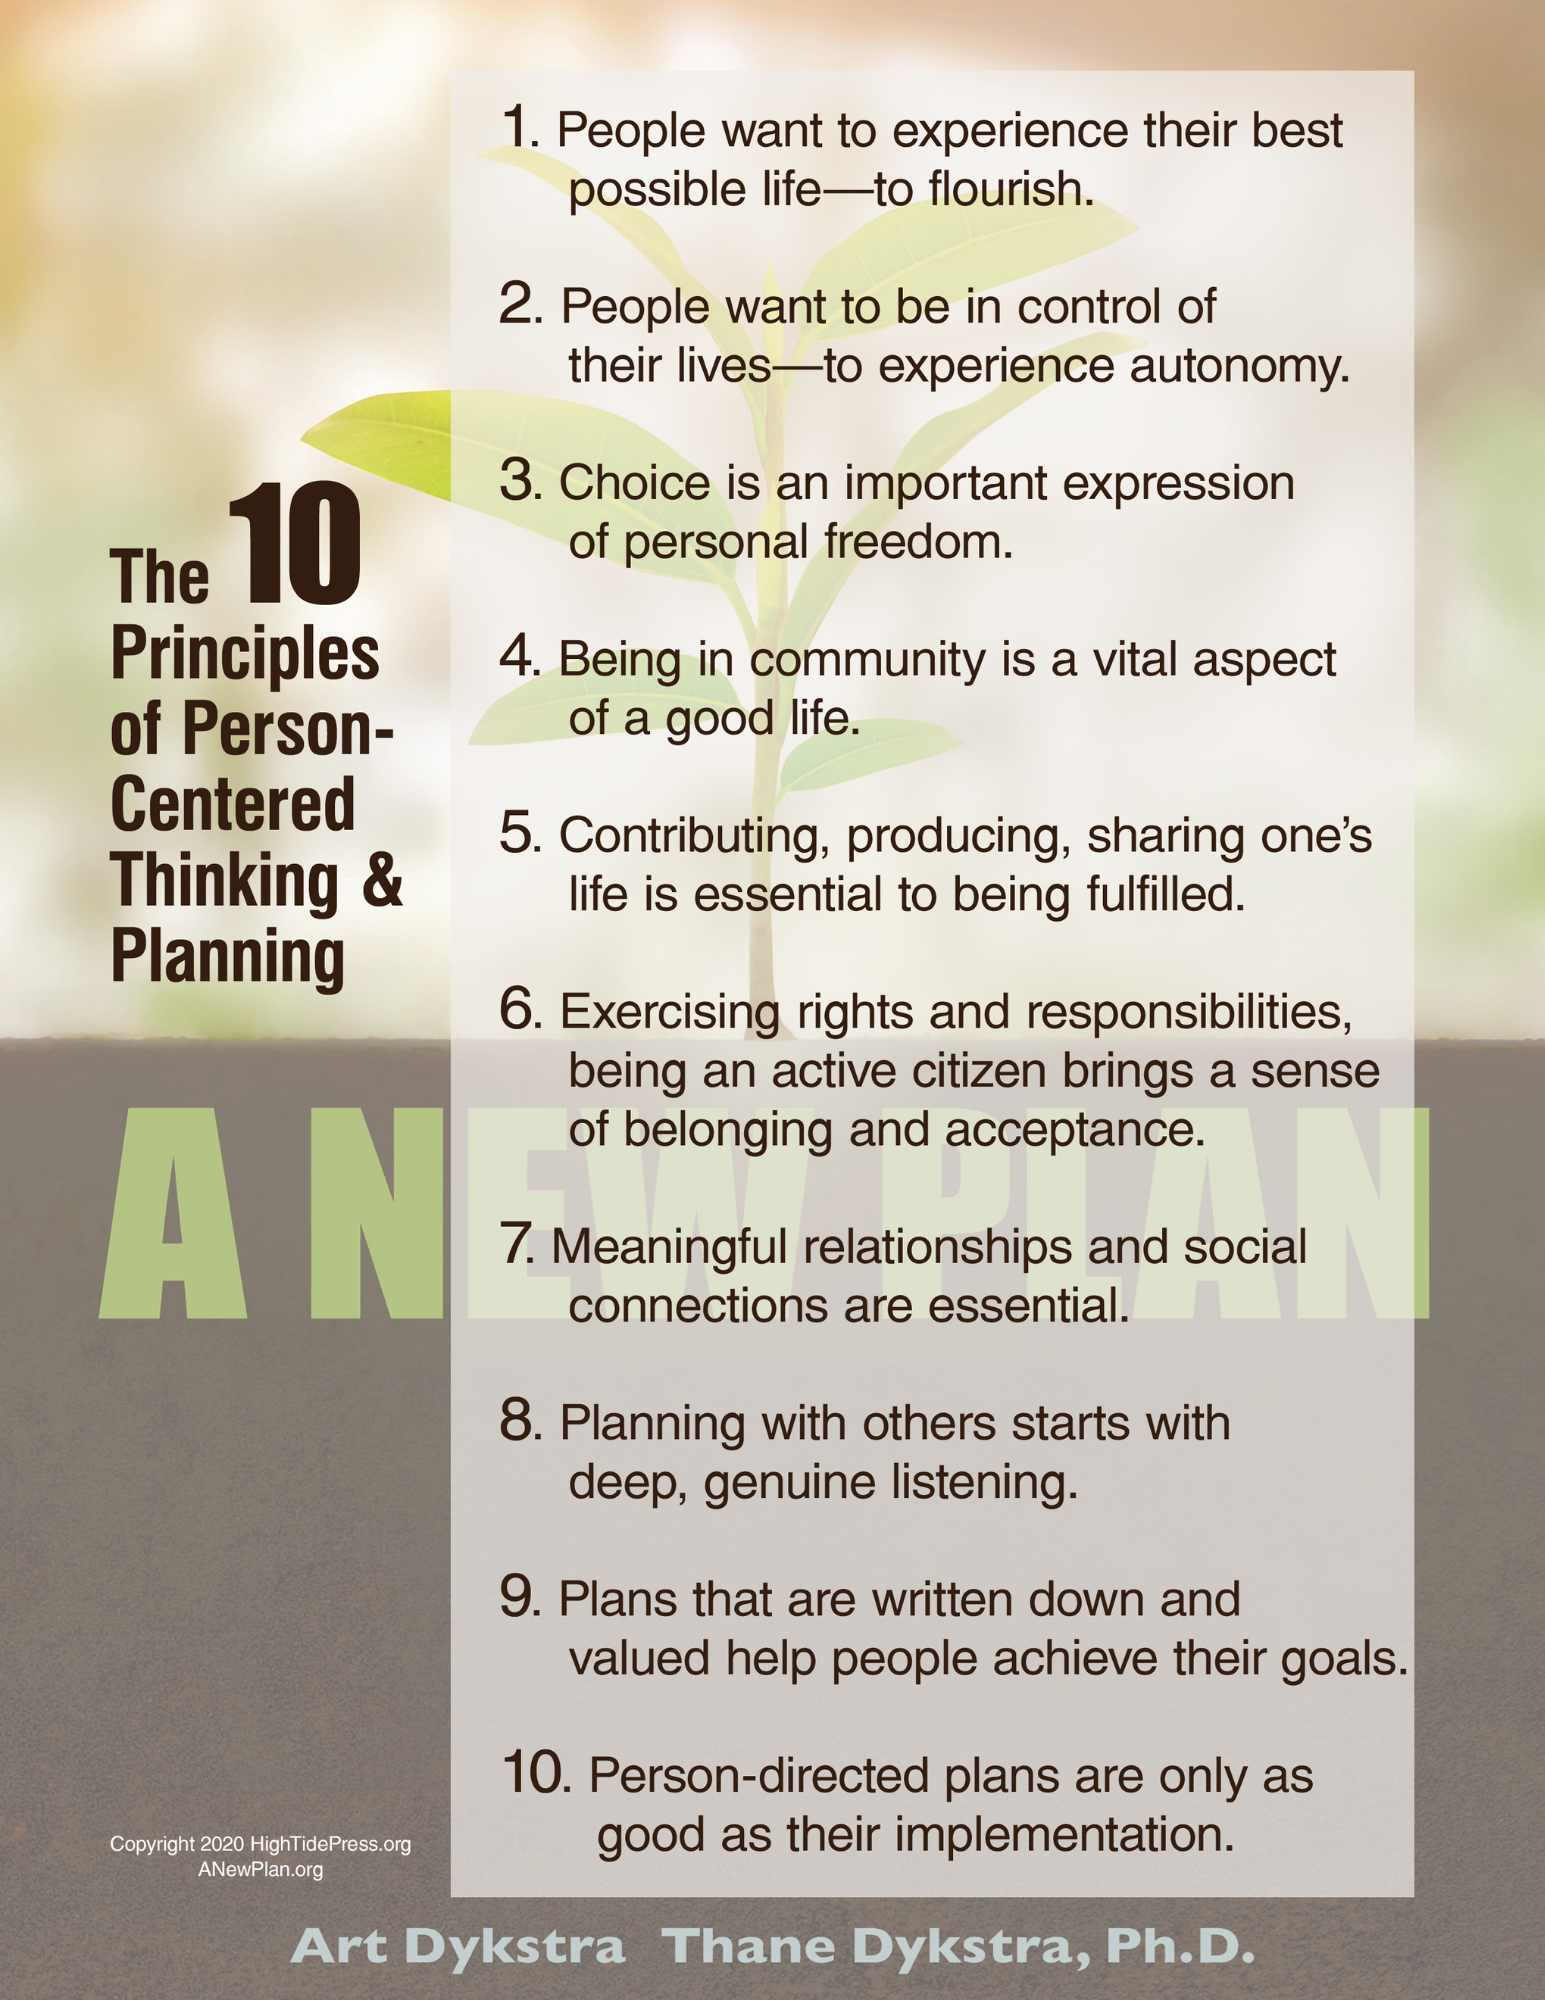 A New Plan 10 Principles